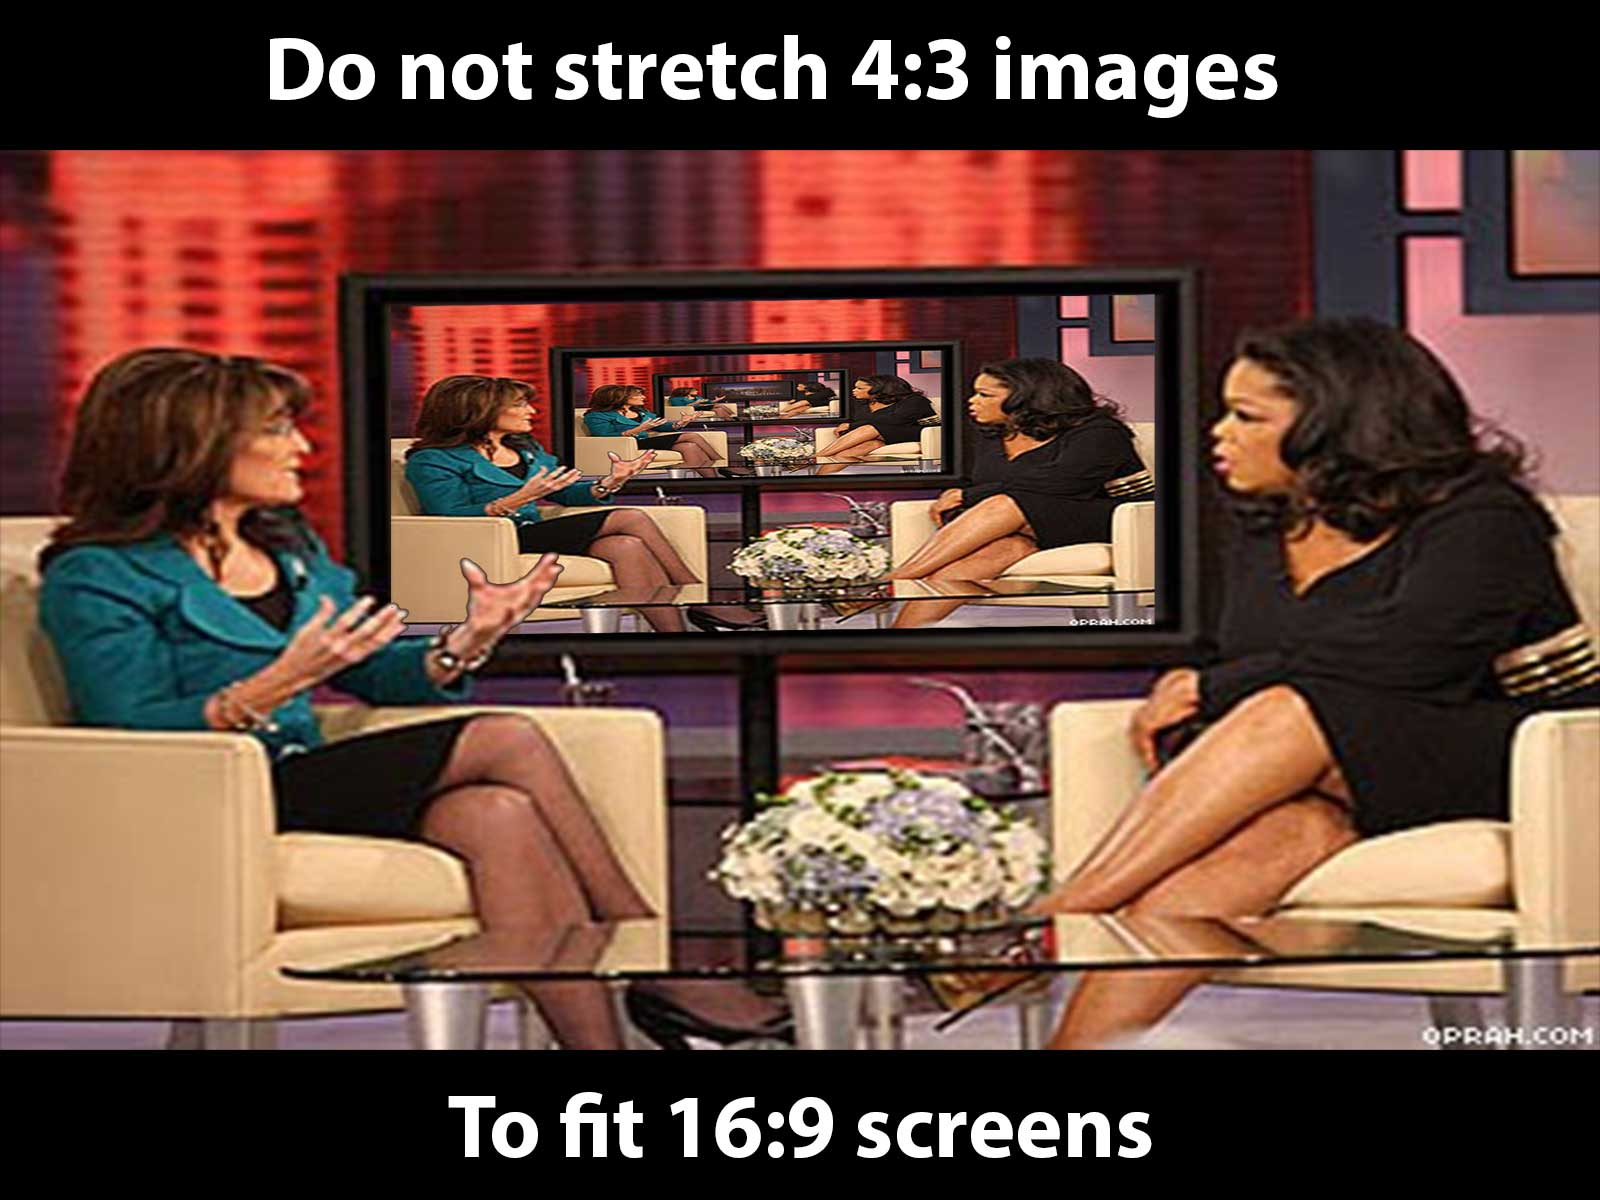 Do not stretch 4:3 images to fit 16:9 screens